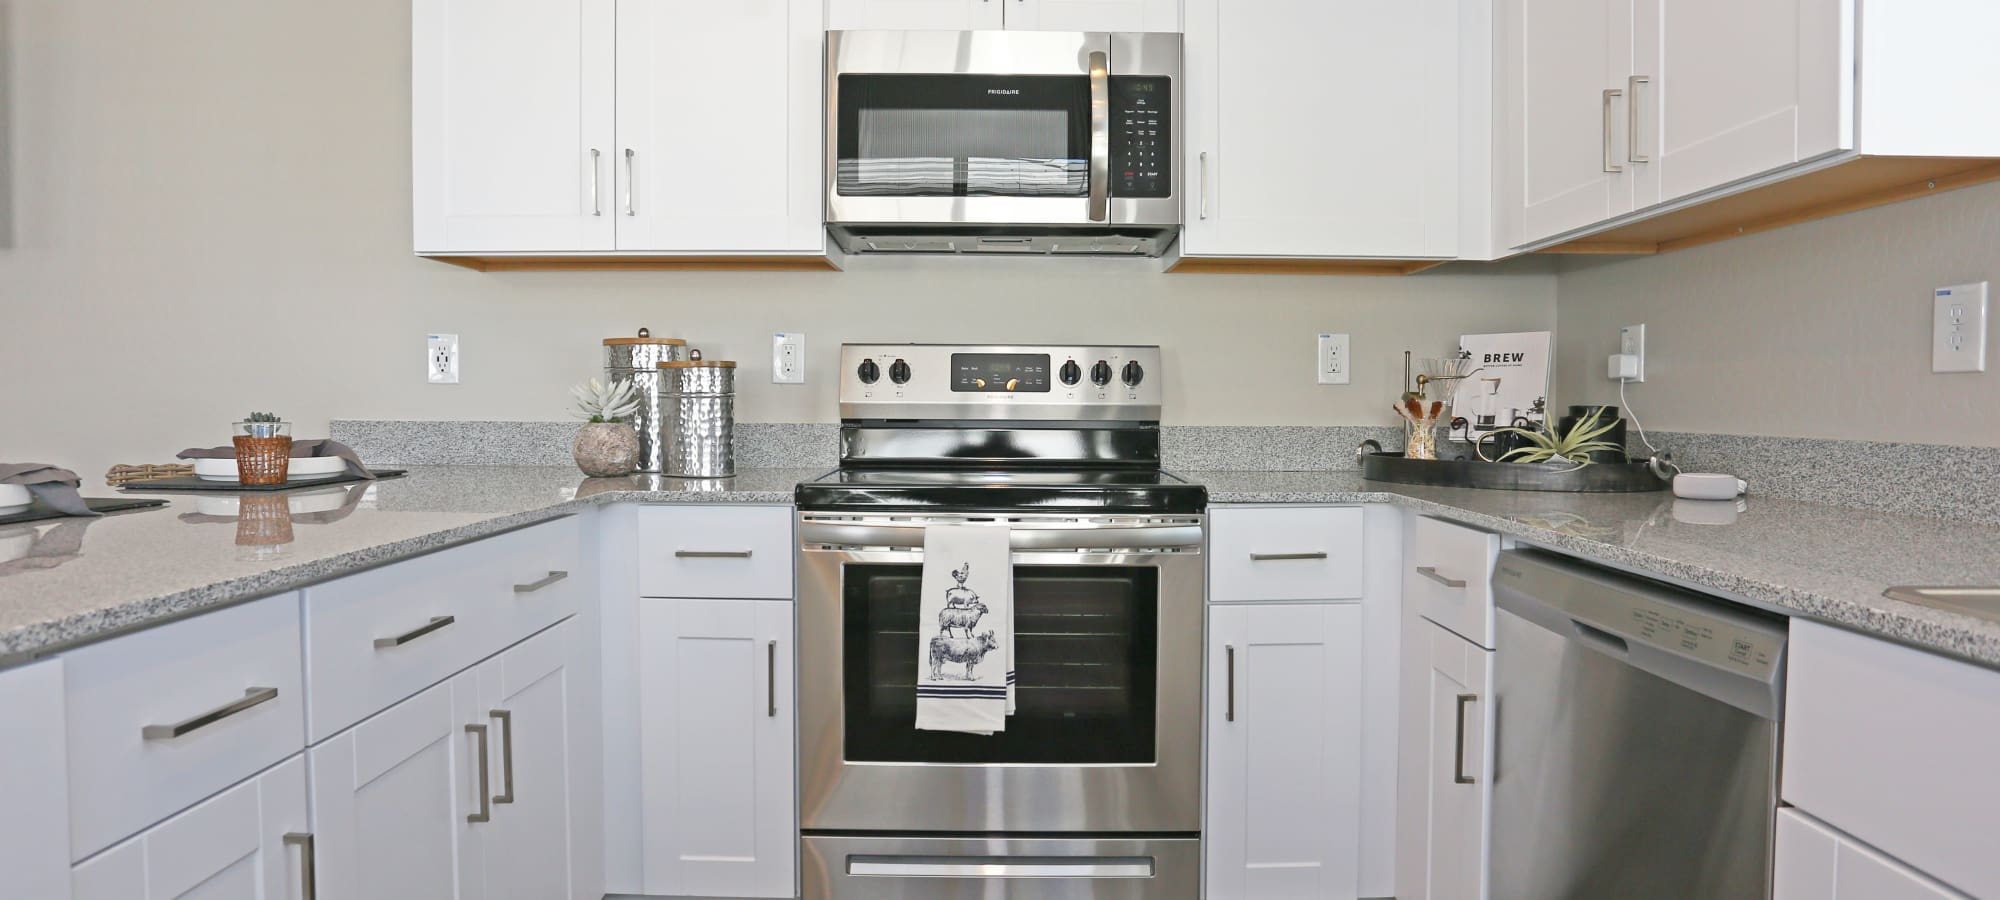 Stainless-steel appliances in model home's kitchen at Christopher Todd Communities On Camelback in Litchfield Park, Arizona